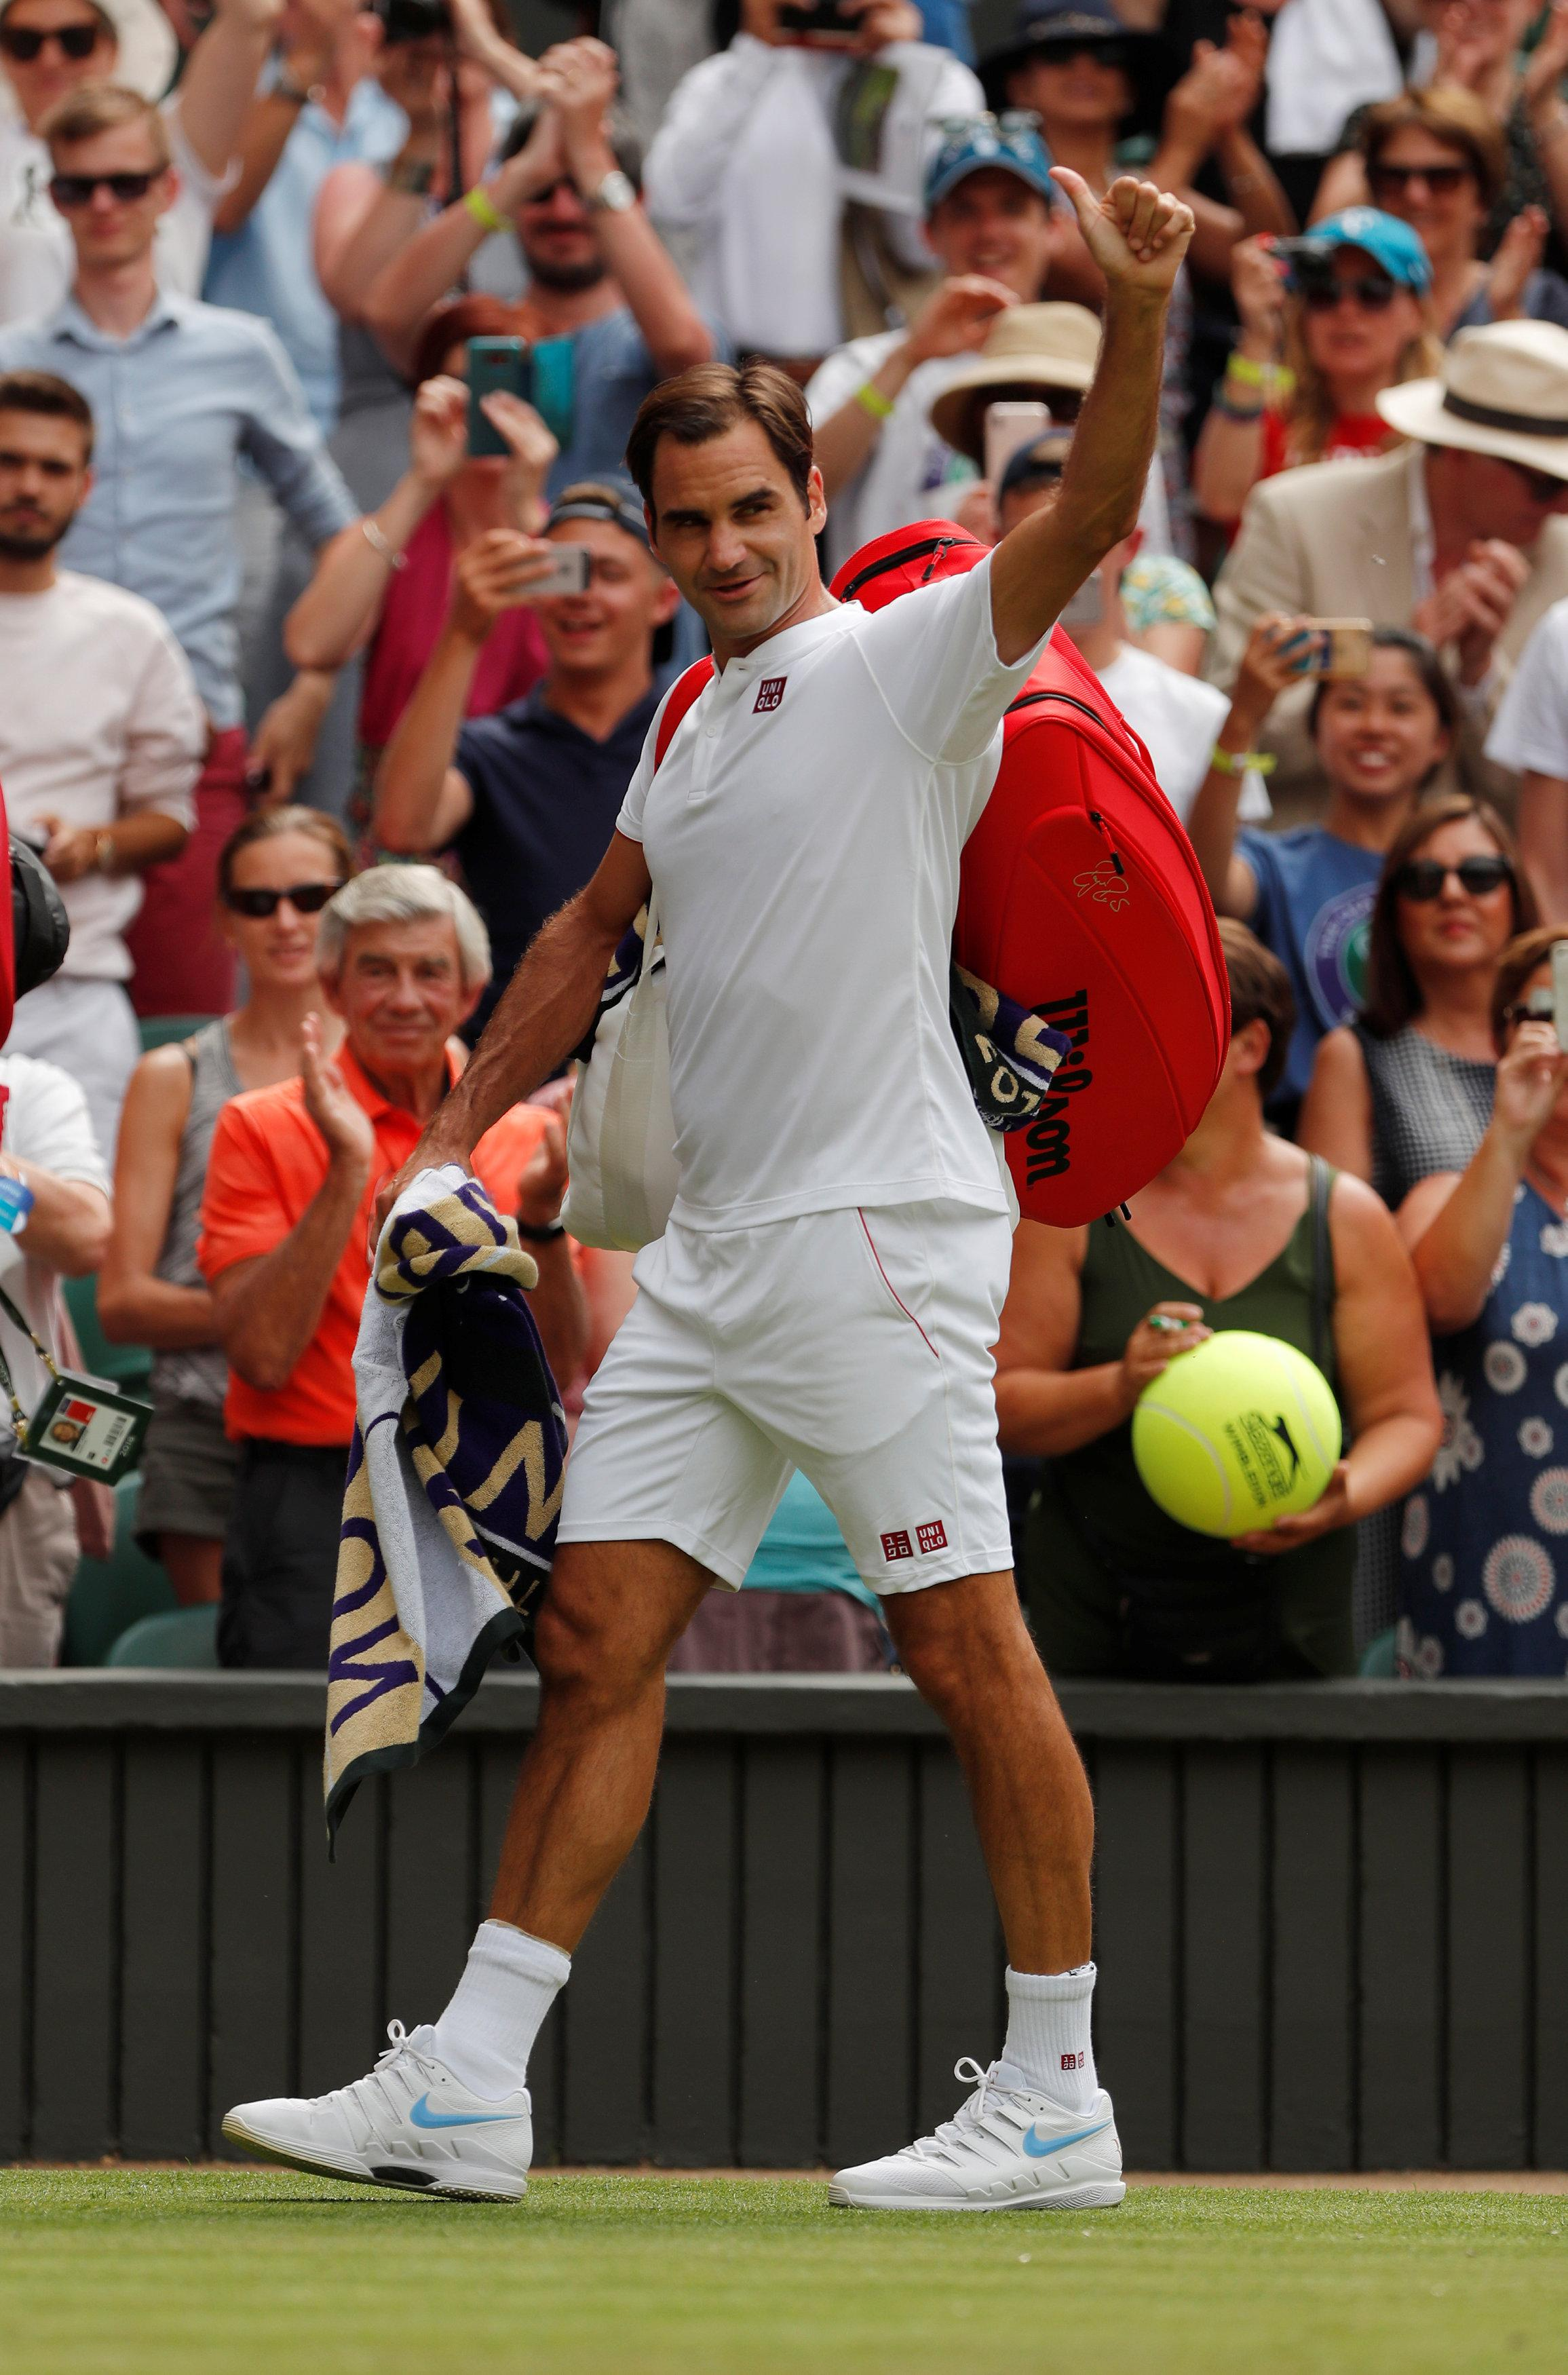 Roger Federer has given an insight to the huge amounts of kit he brings in his bags to Wimbledon